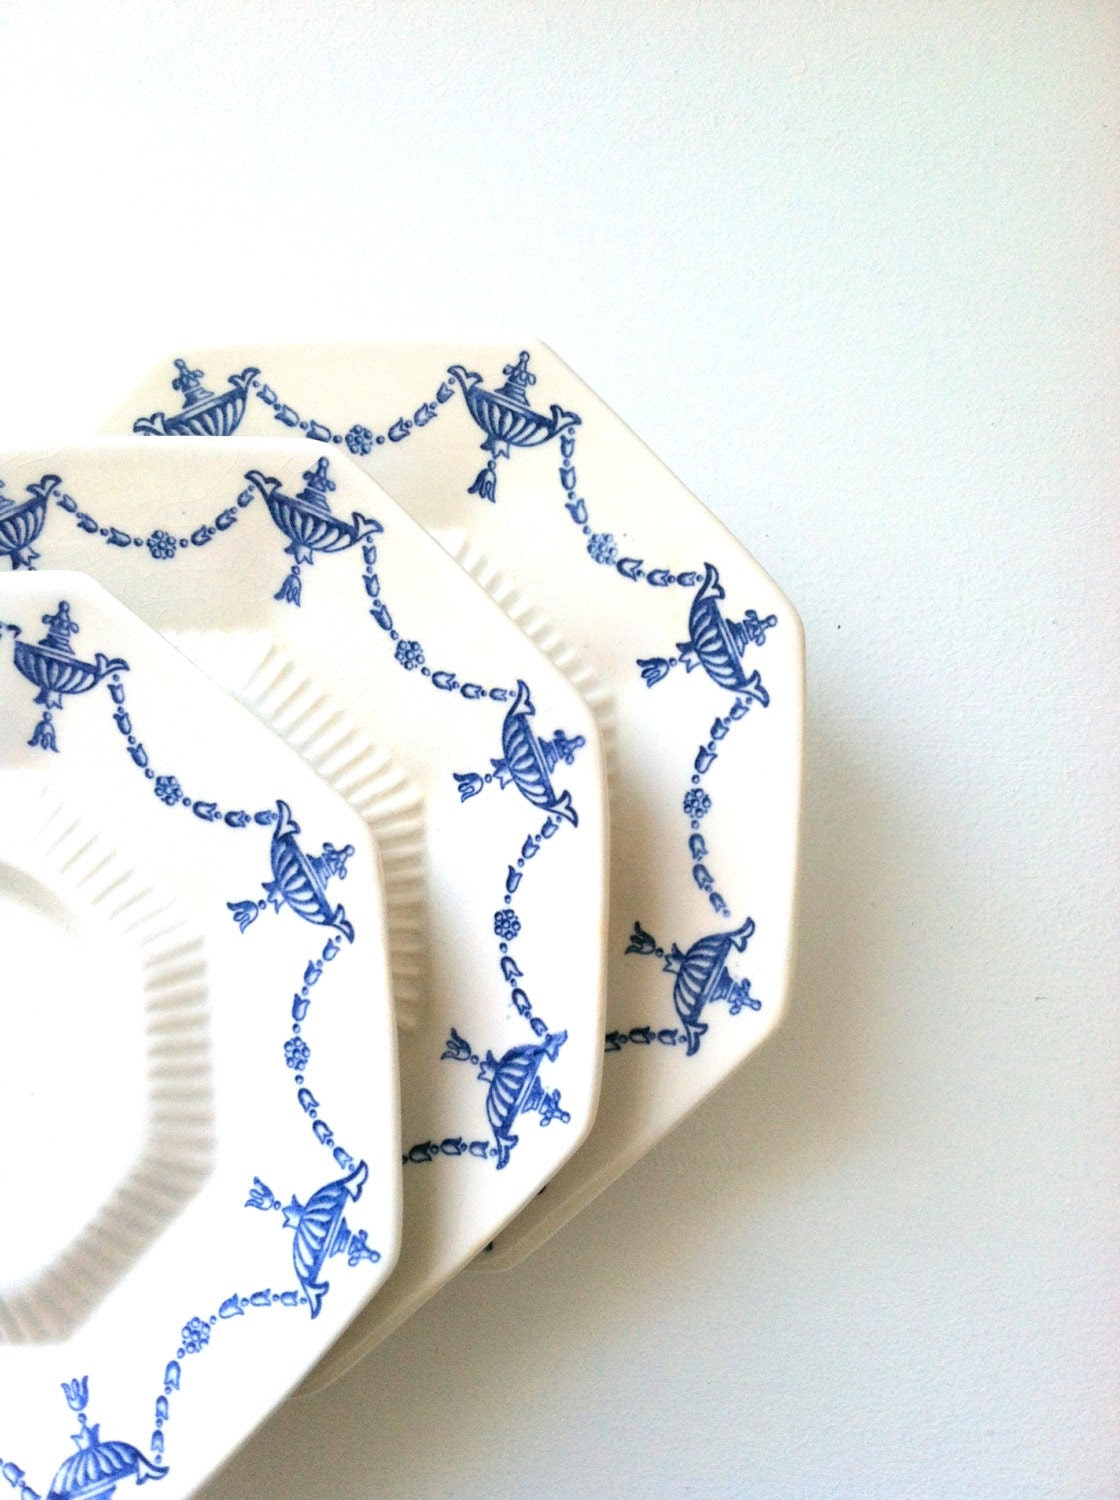 Antique Delft Blue Independance Ironstone China Castleton 3 Tiered High Tea Stand Birthday, Thank You or Housewarming Gift Inspiration - MariasFarmhouse